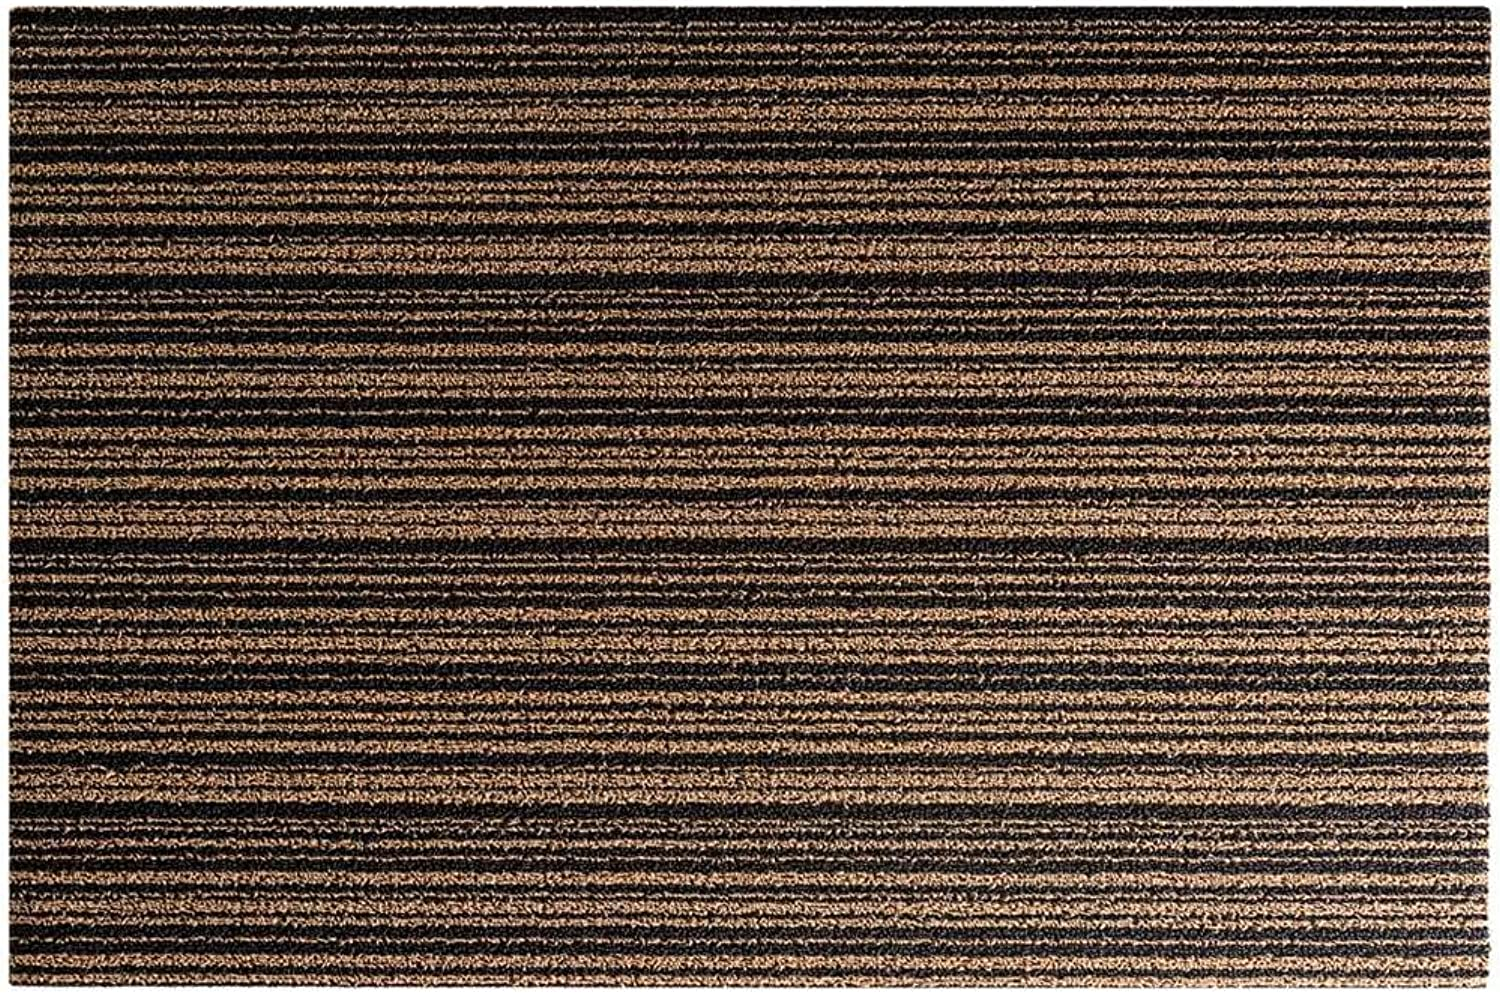 Indoor Outdoor Doormat, Easy to Clean PVC Non-Slip Backing Absorbing Mud Dust Pad Suitable for Entrances, Terraces, Stairs and Garages -Coffee color-60x120Cm(24x47Inch)